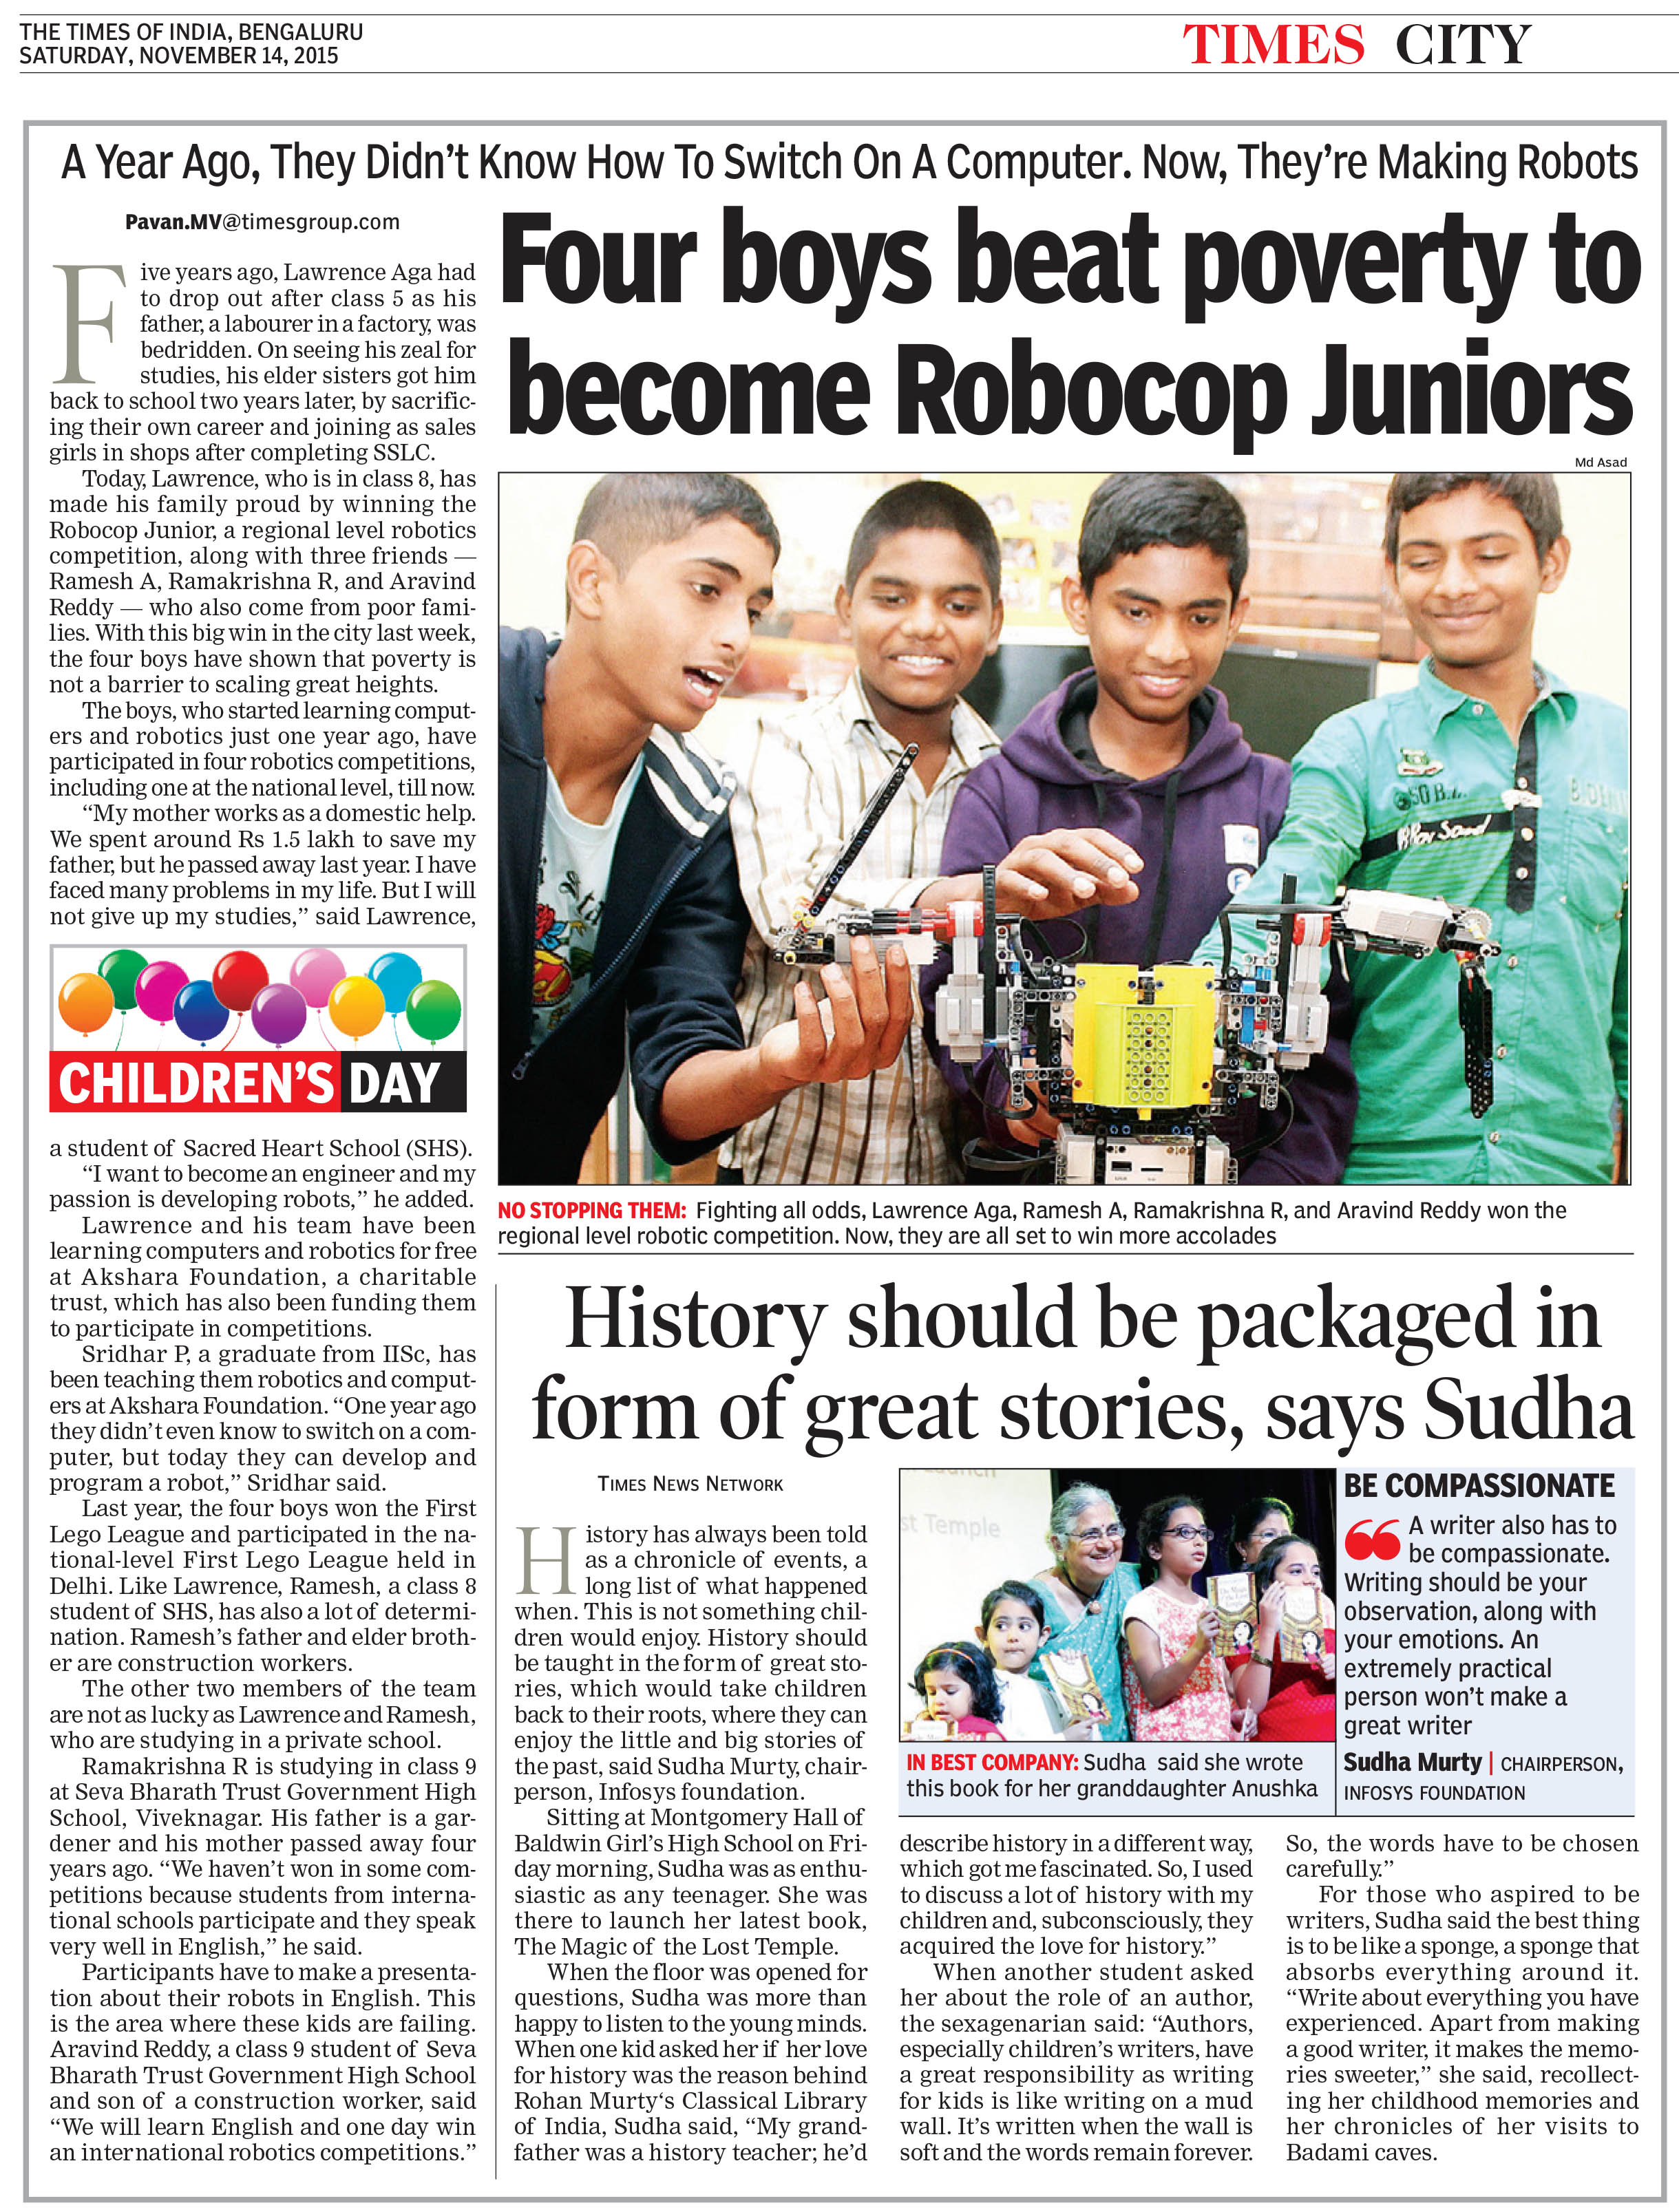 Four boys beat poverty to become Robocop Juniors